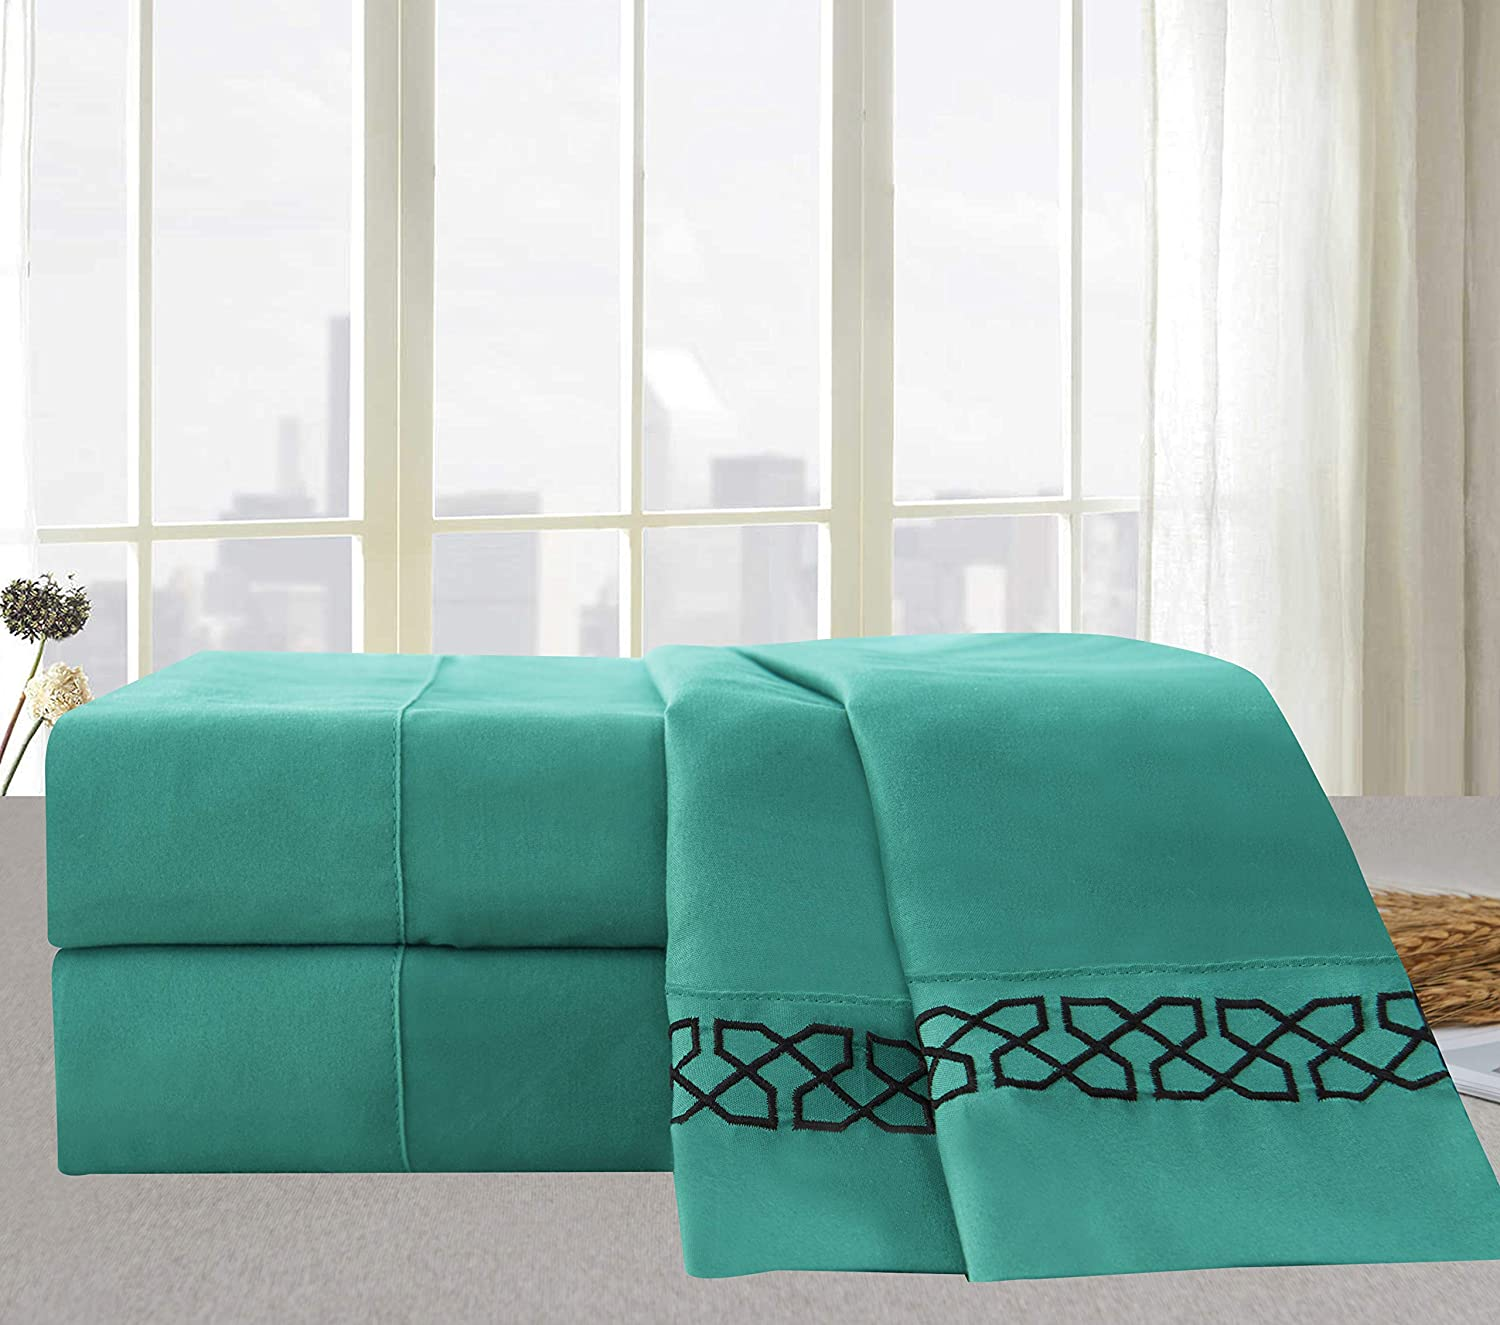 Elegant Comfort  Avery Collection 4-Piece Bed Sheet /& Pillowcase Set Wrinkle and Fade Resistant Full Turquoise Elegant Comfort TM 89RW Avery-Sheets-Full Turquoise Soft Double Brushed Microfiber 100/% Hypoallergenic